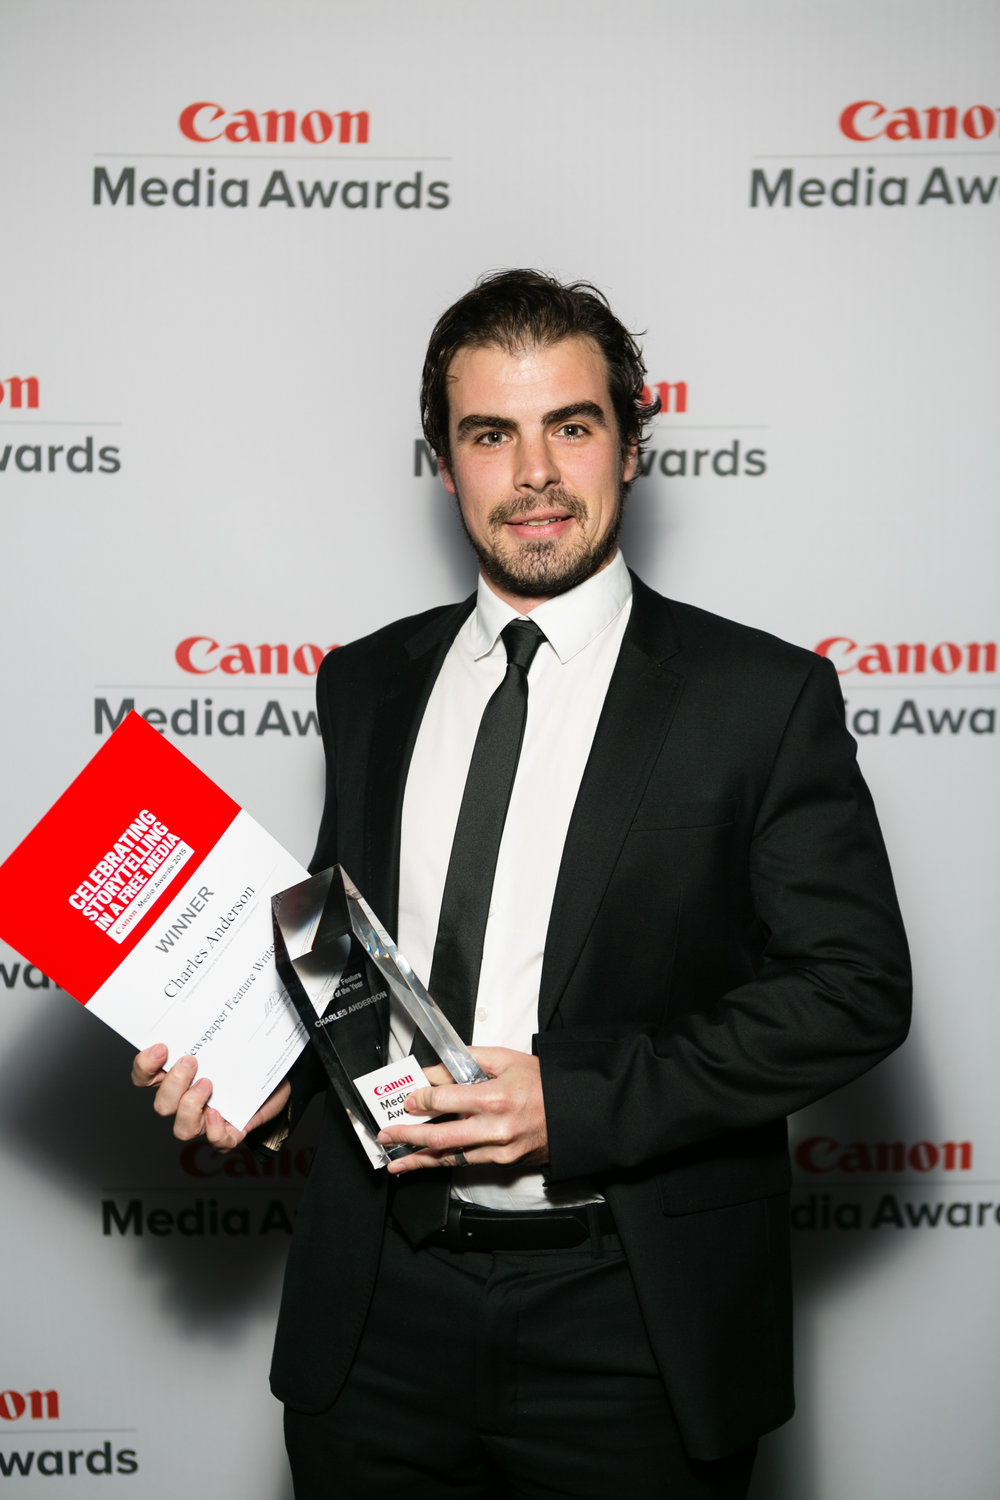 canon_media_awards_2015_interlike_nz_clinton_tudor-5912-182.jpg